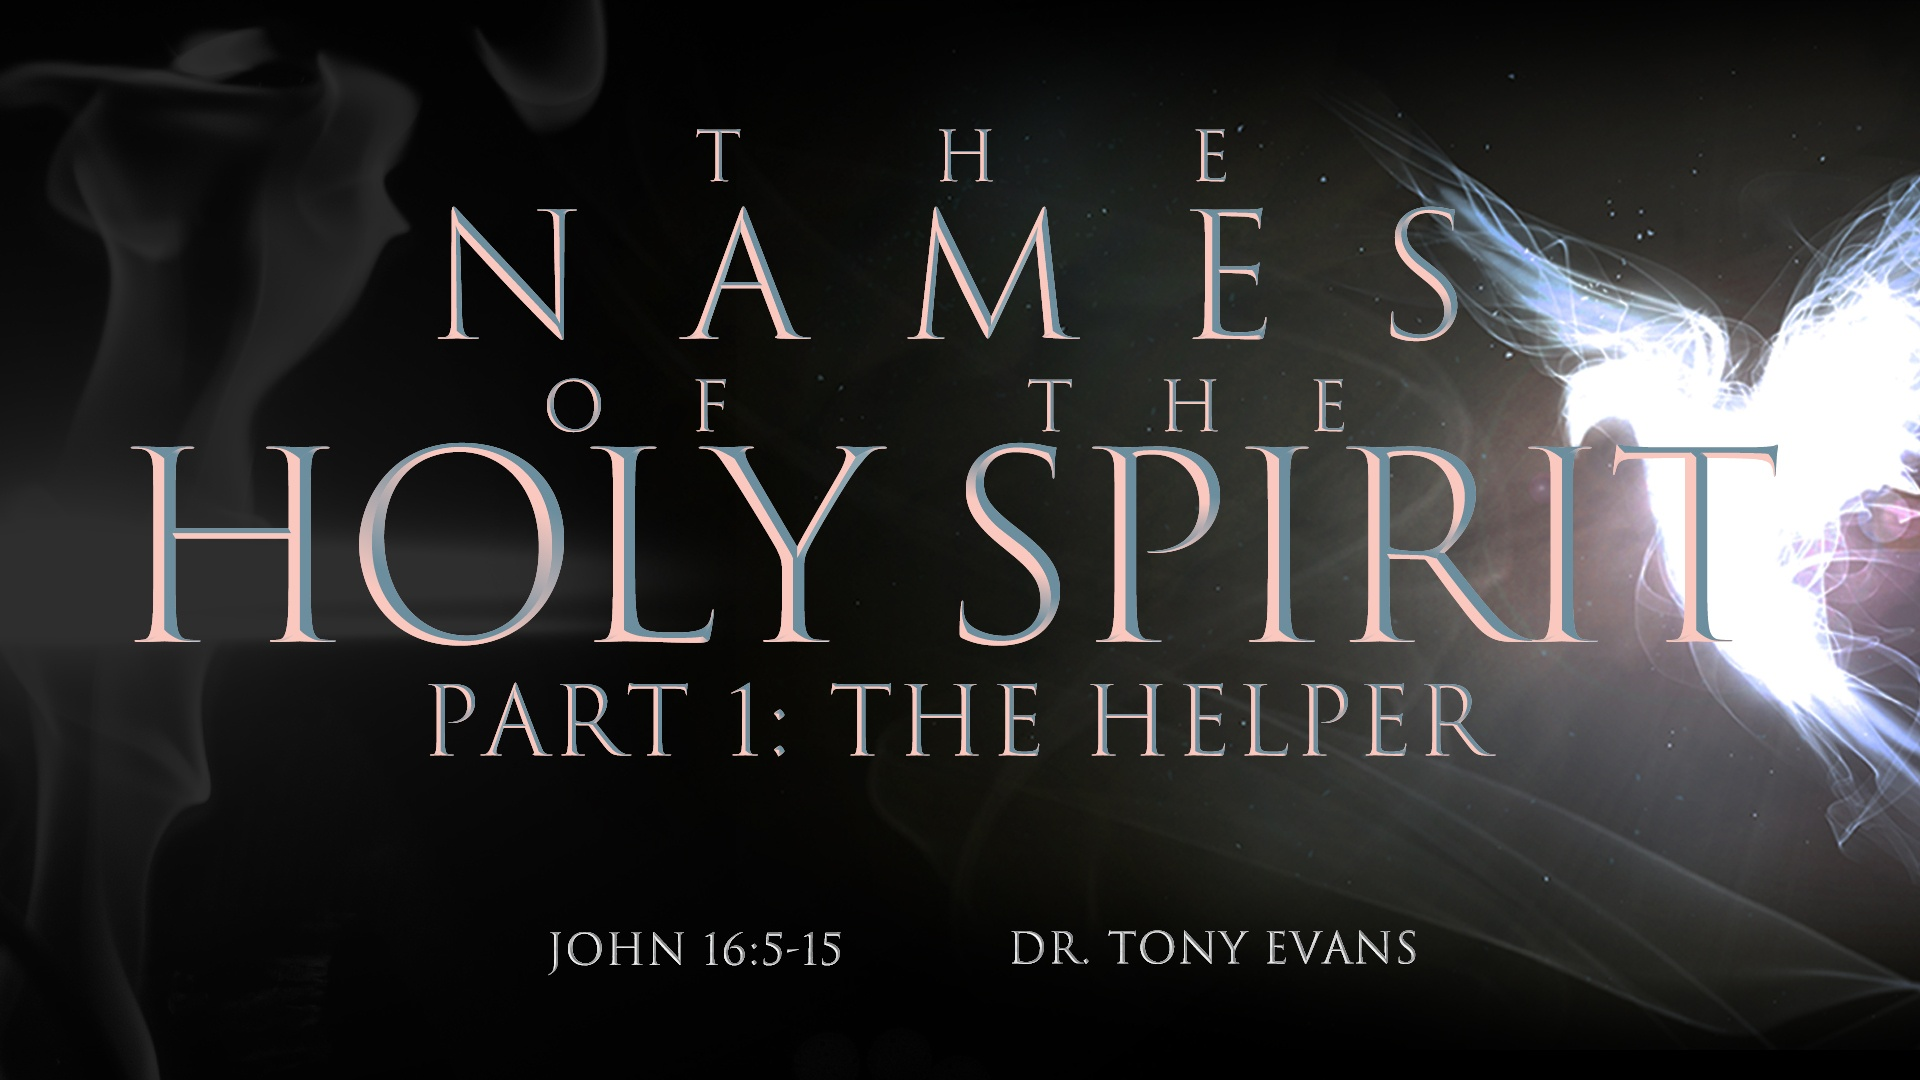 """The Helper"" by Dr. Tony Evans (series: Names of the Holy Spirit)"